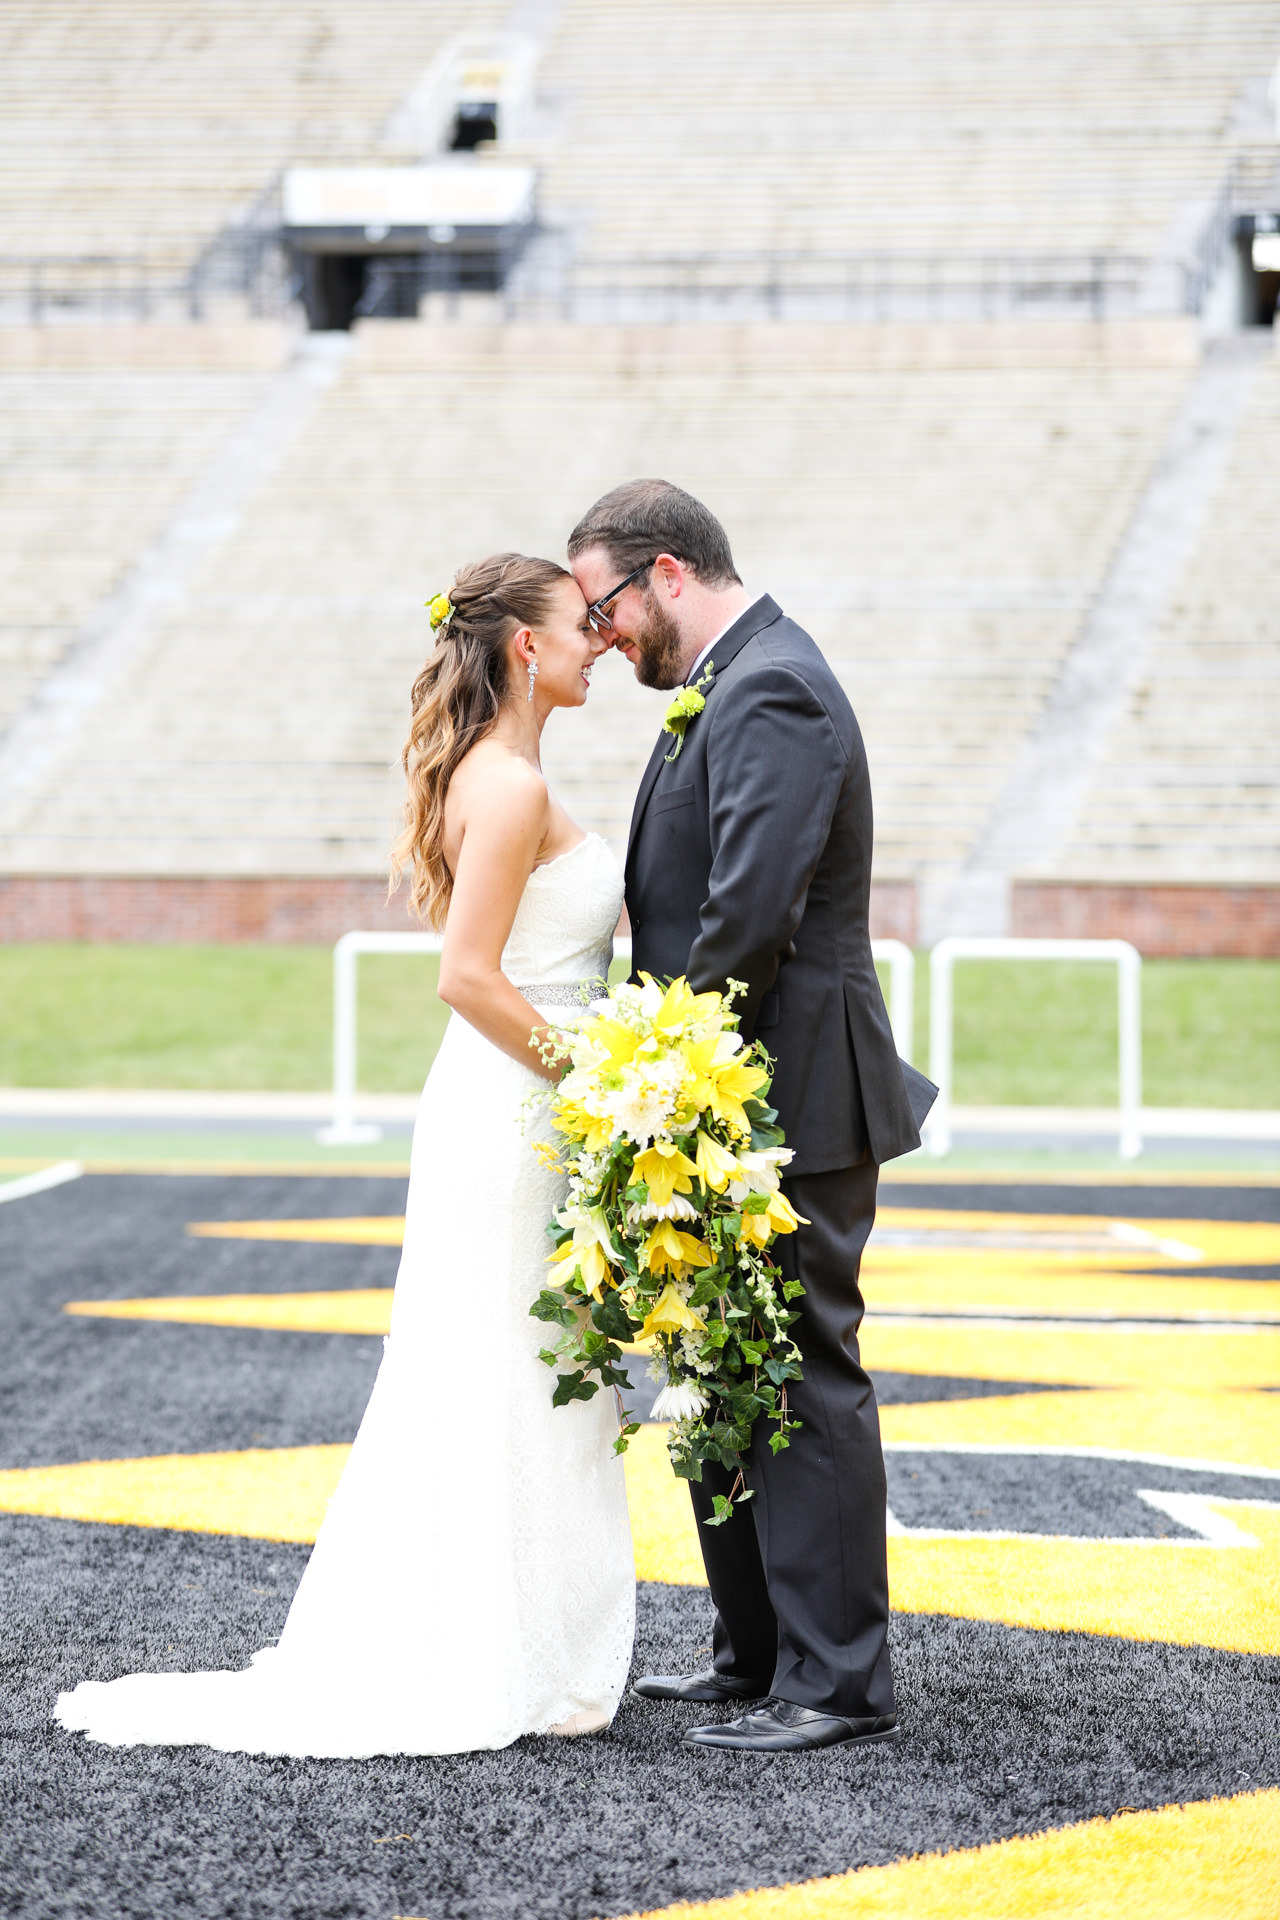 Trinity Lutheran Wedding and Mizzou Columns Club at Faurot Field Memorial Stadium Reception in Columbia MO photos by St Louis Wedding Photographers TJ and Nichole Oldani Photography